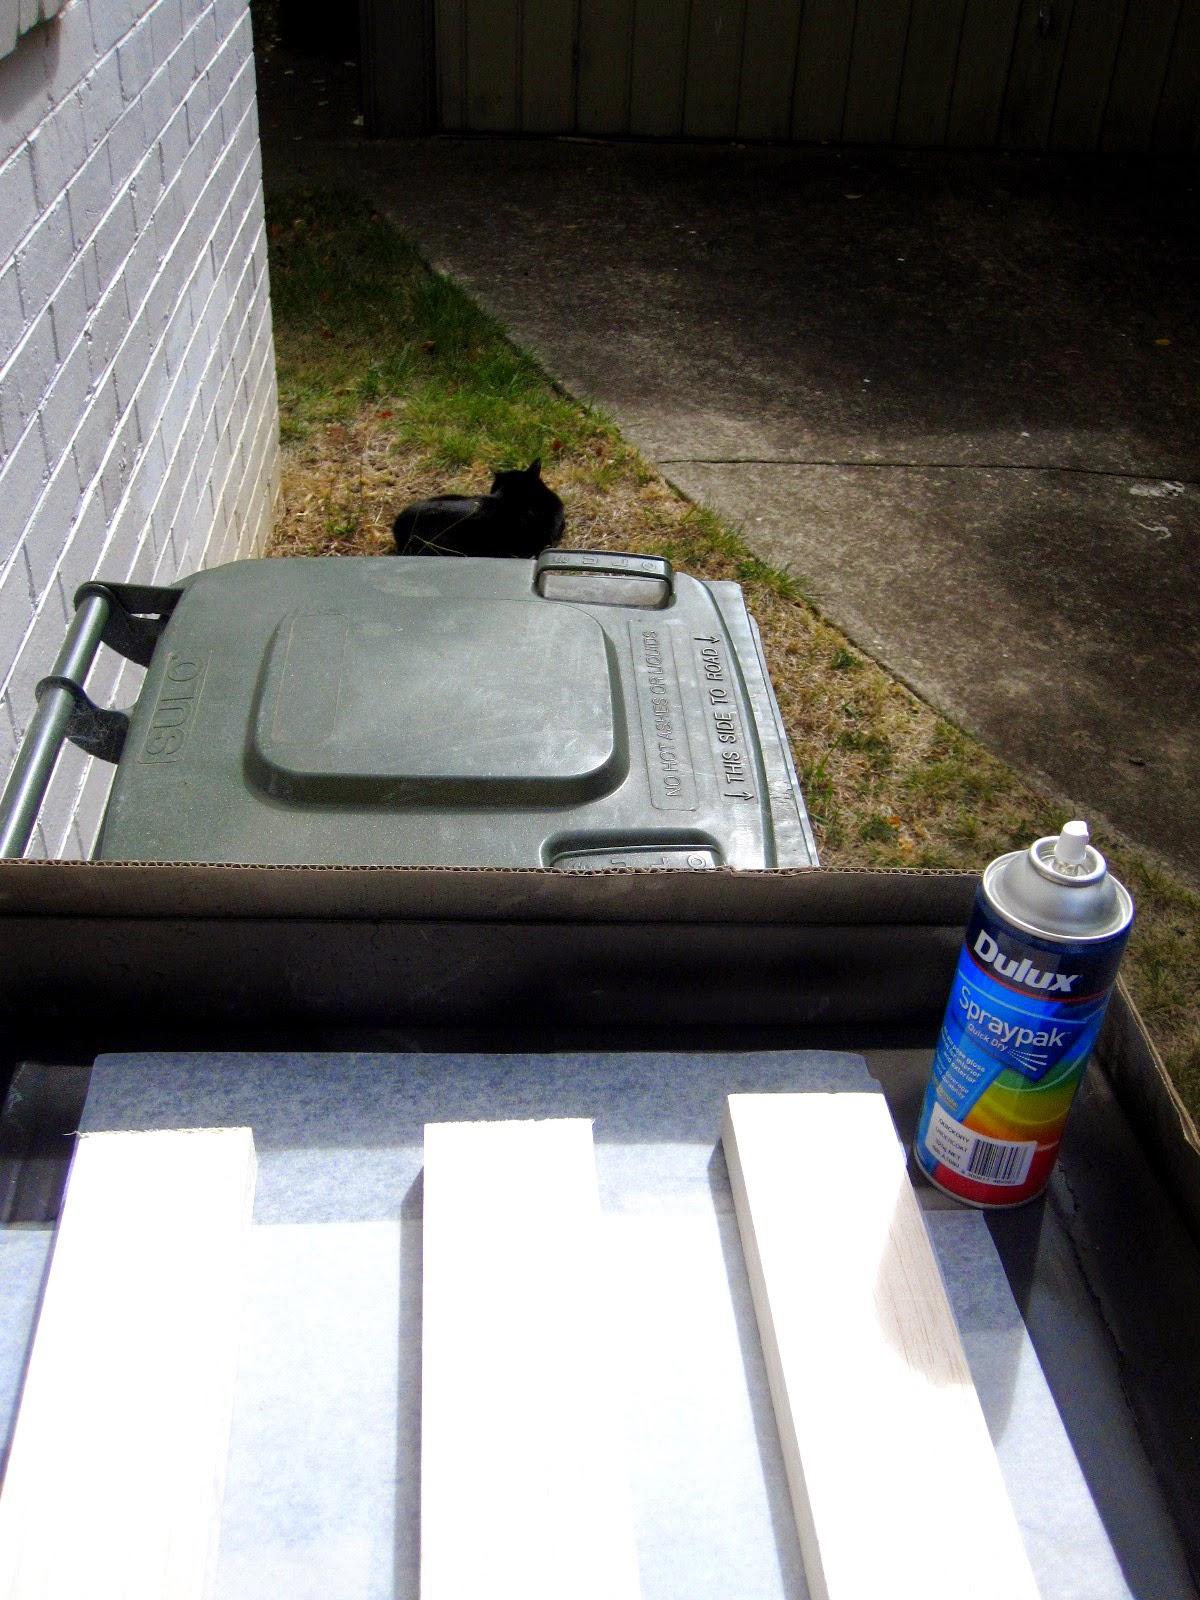 Can of spray paint and three lengths of balsa wood on top of a recycling bin outside a brick house.